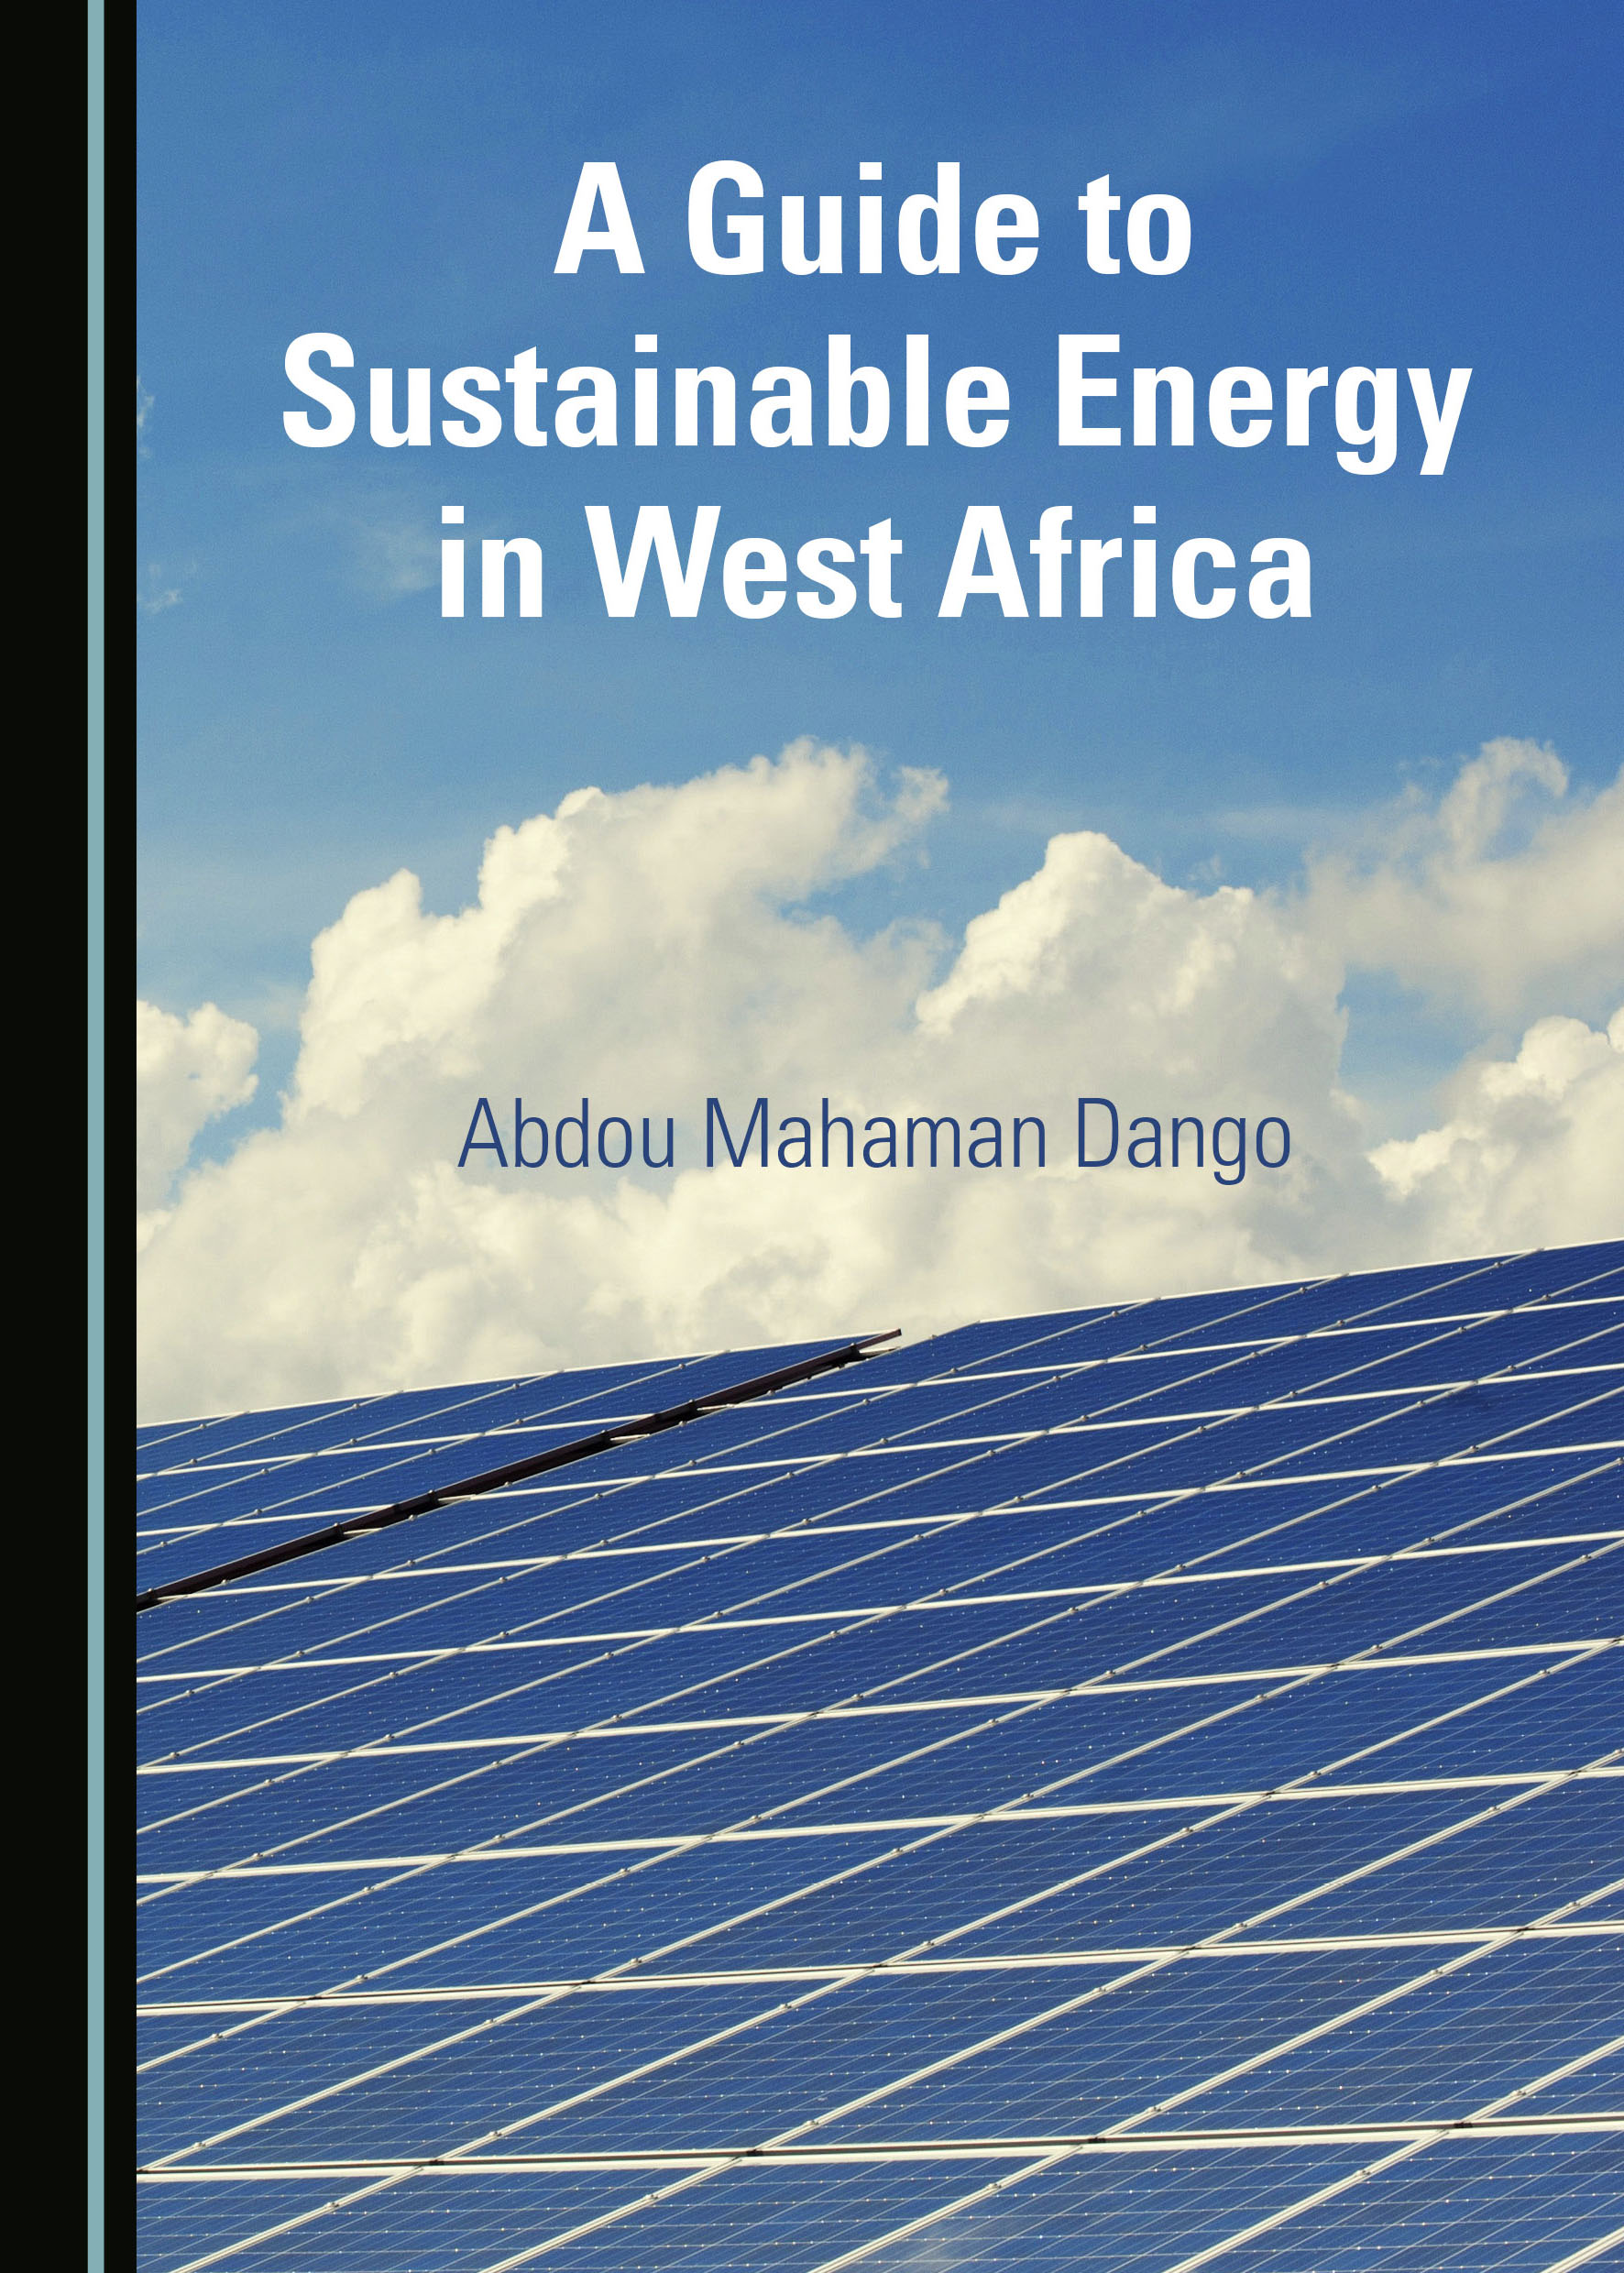 A Guide to Sustainable Energy in West Africa